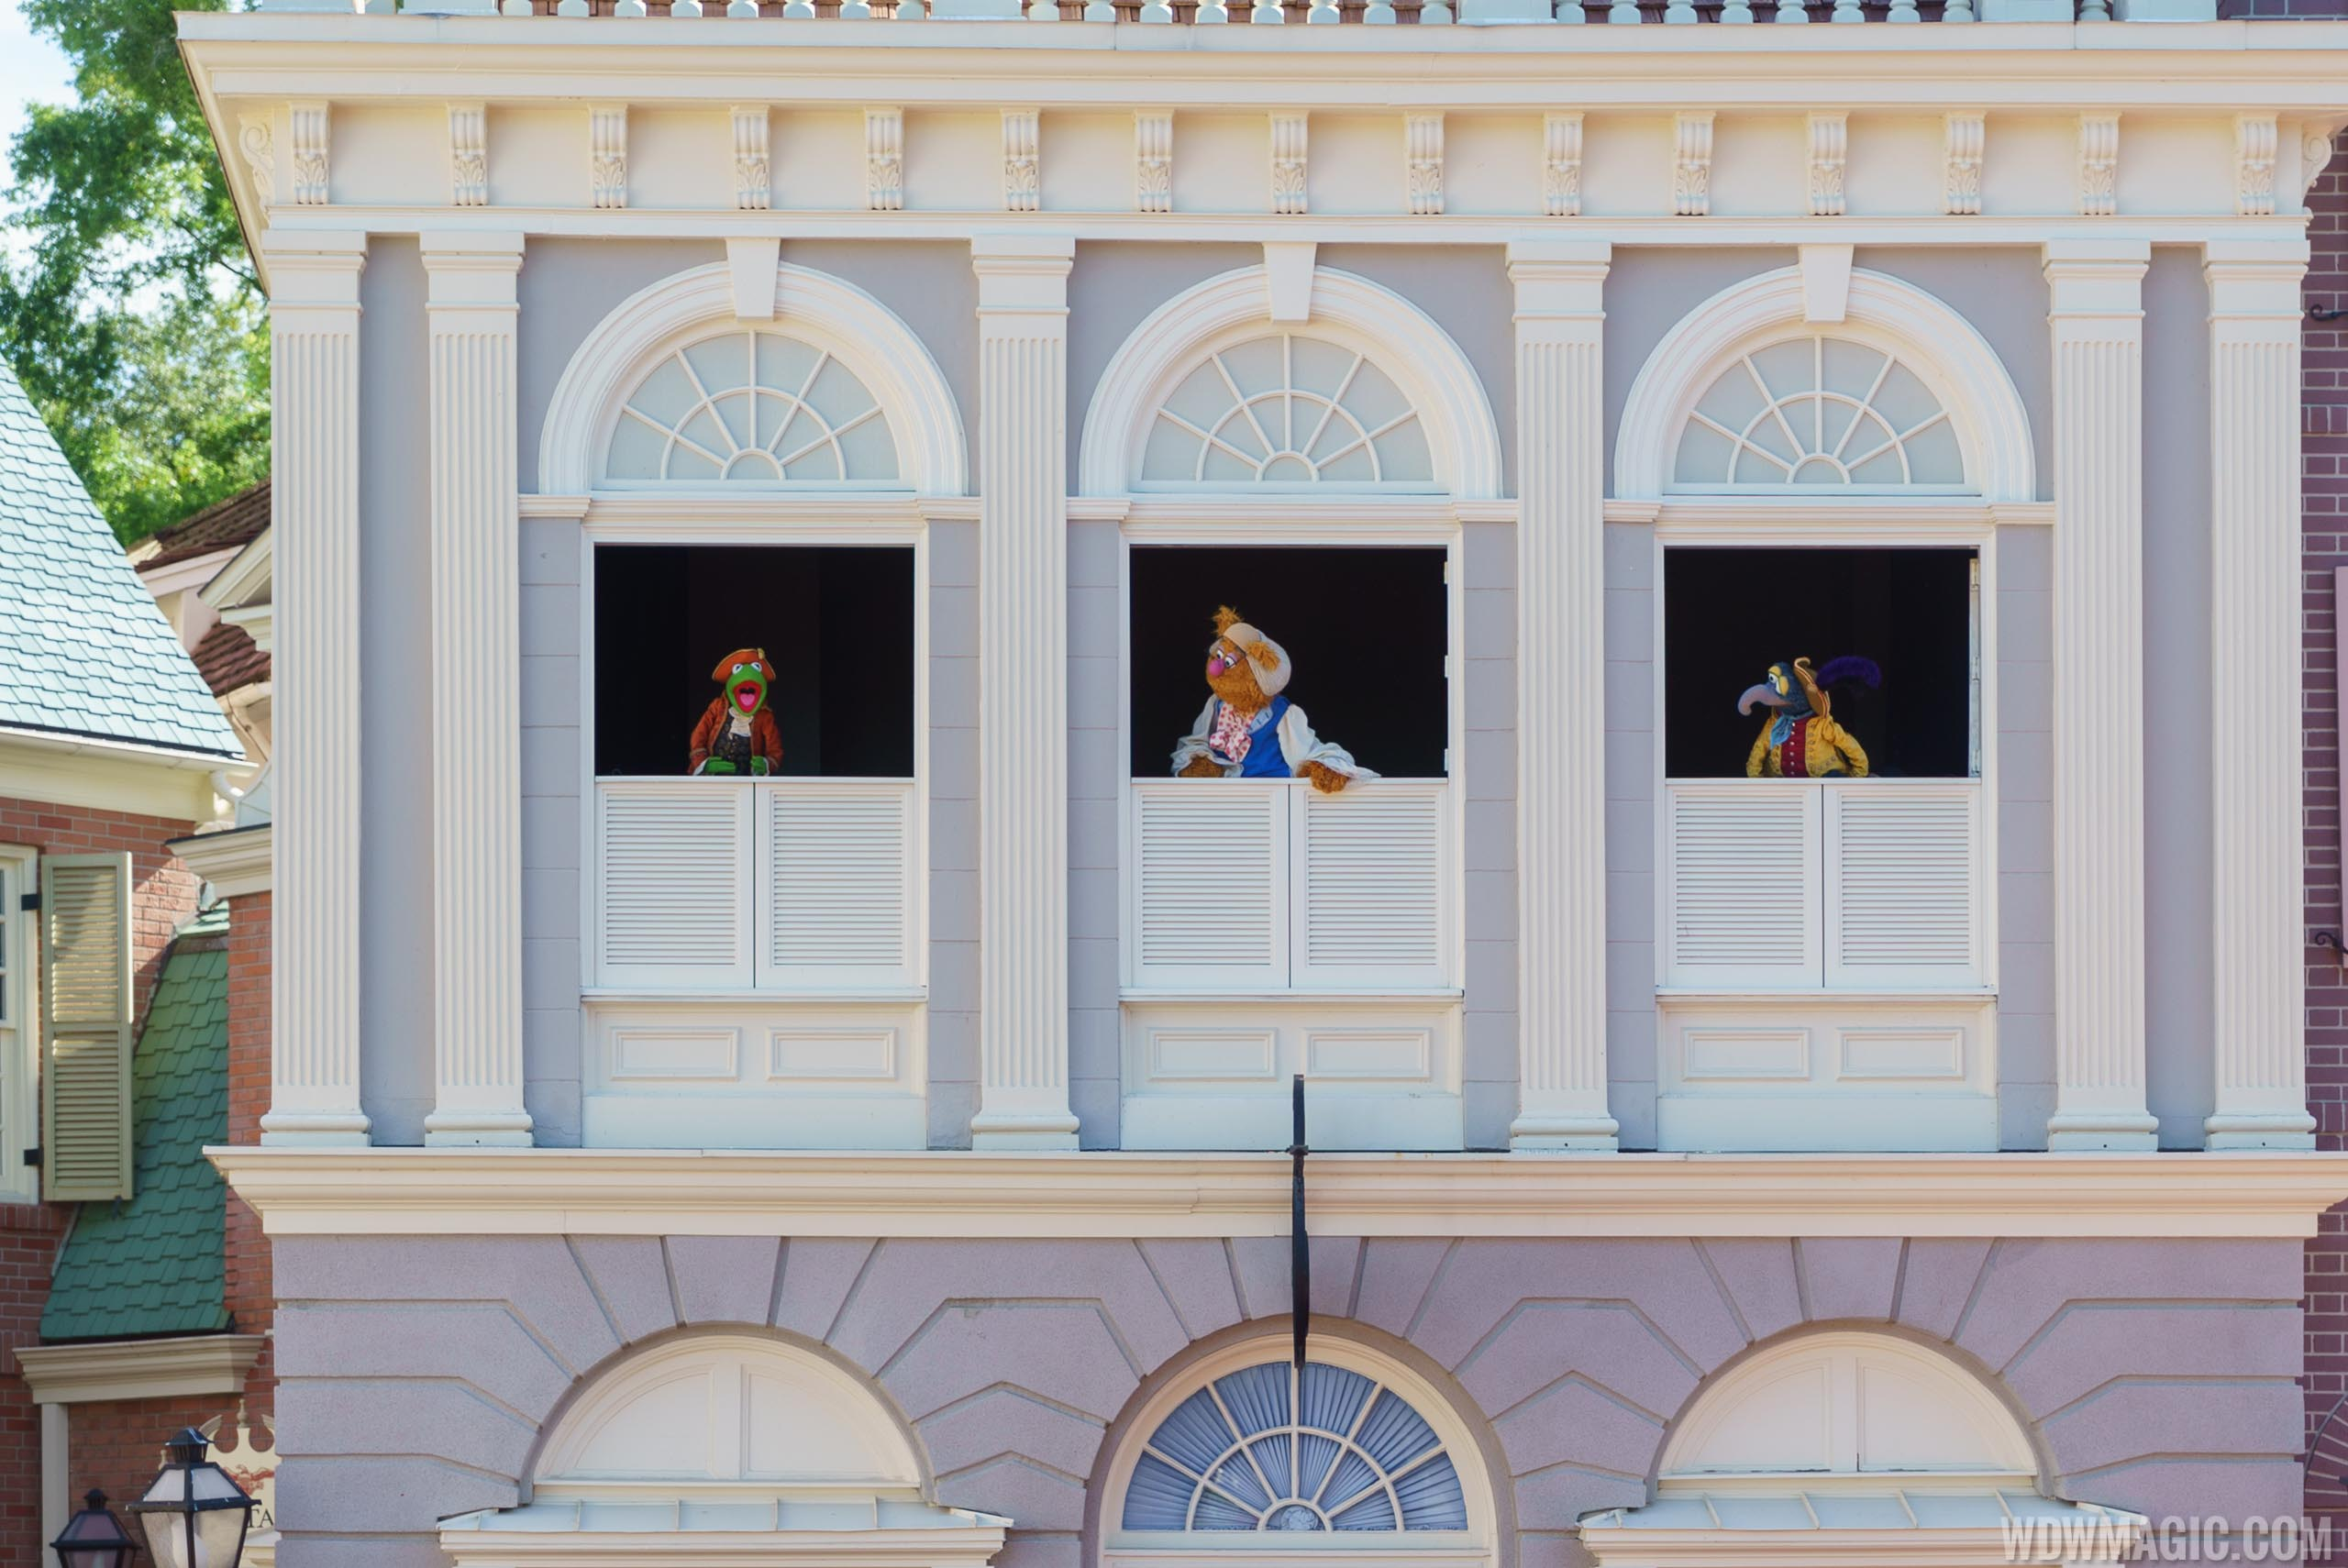 'The Muppets Present Great Moments in American History' show